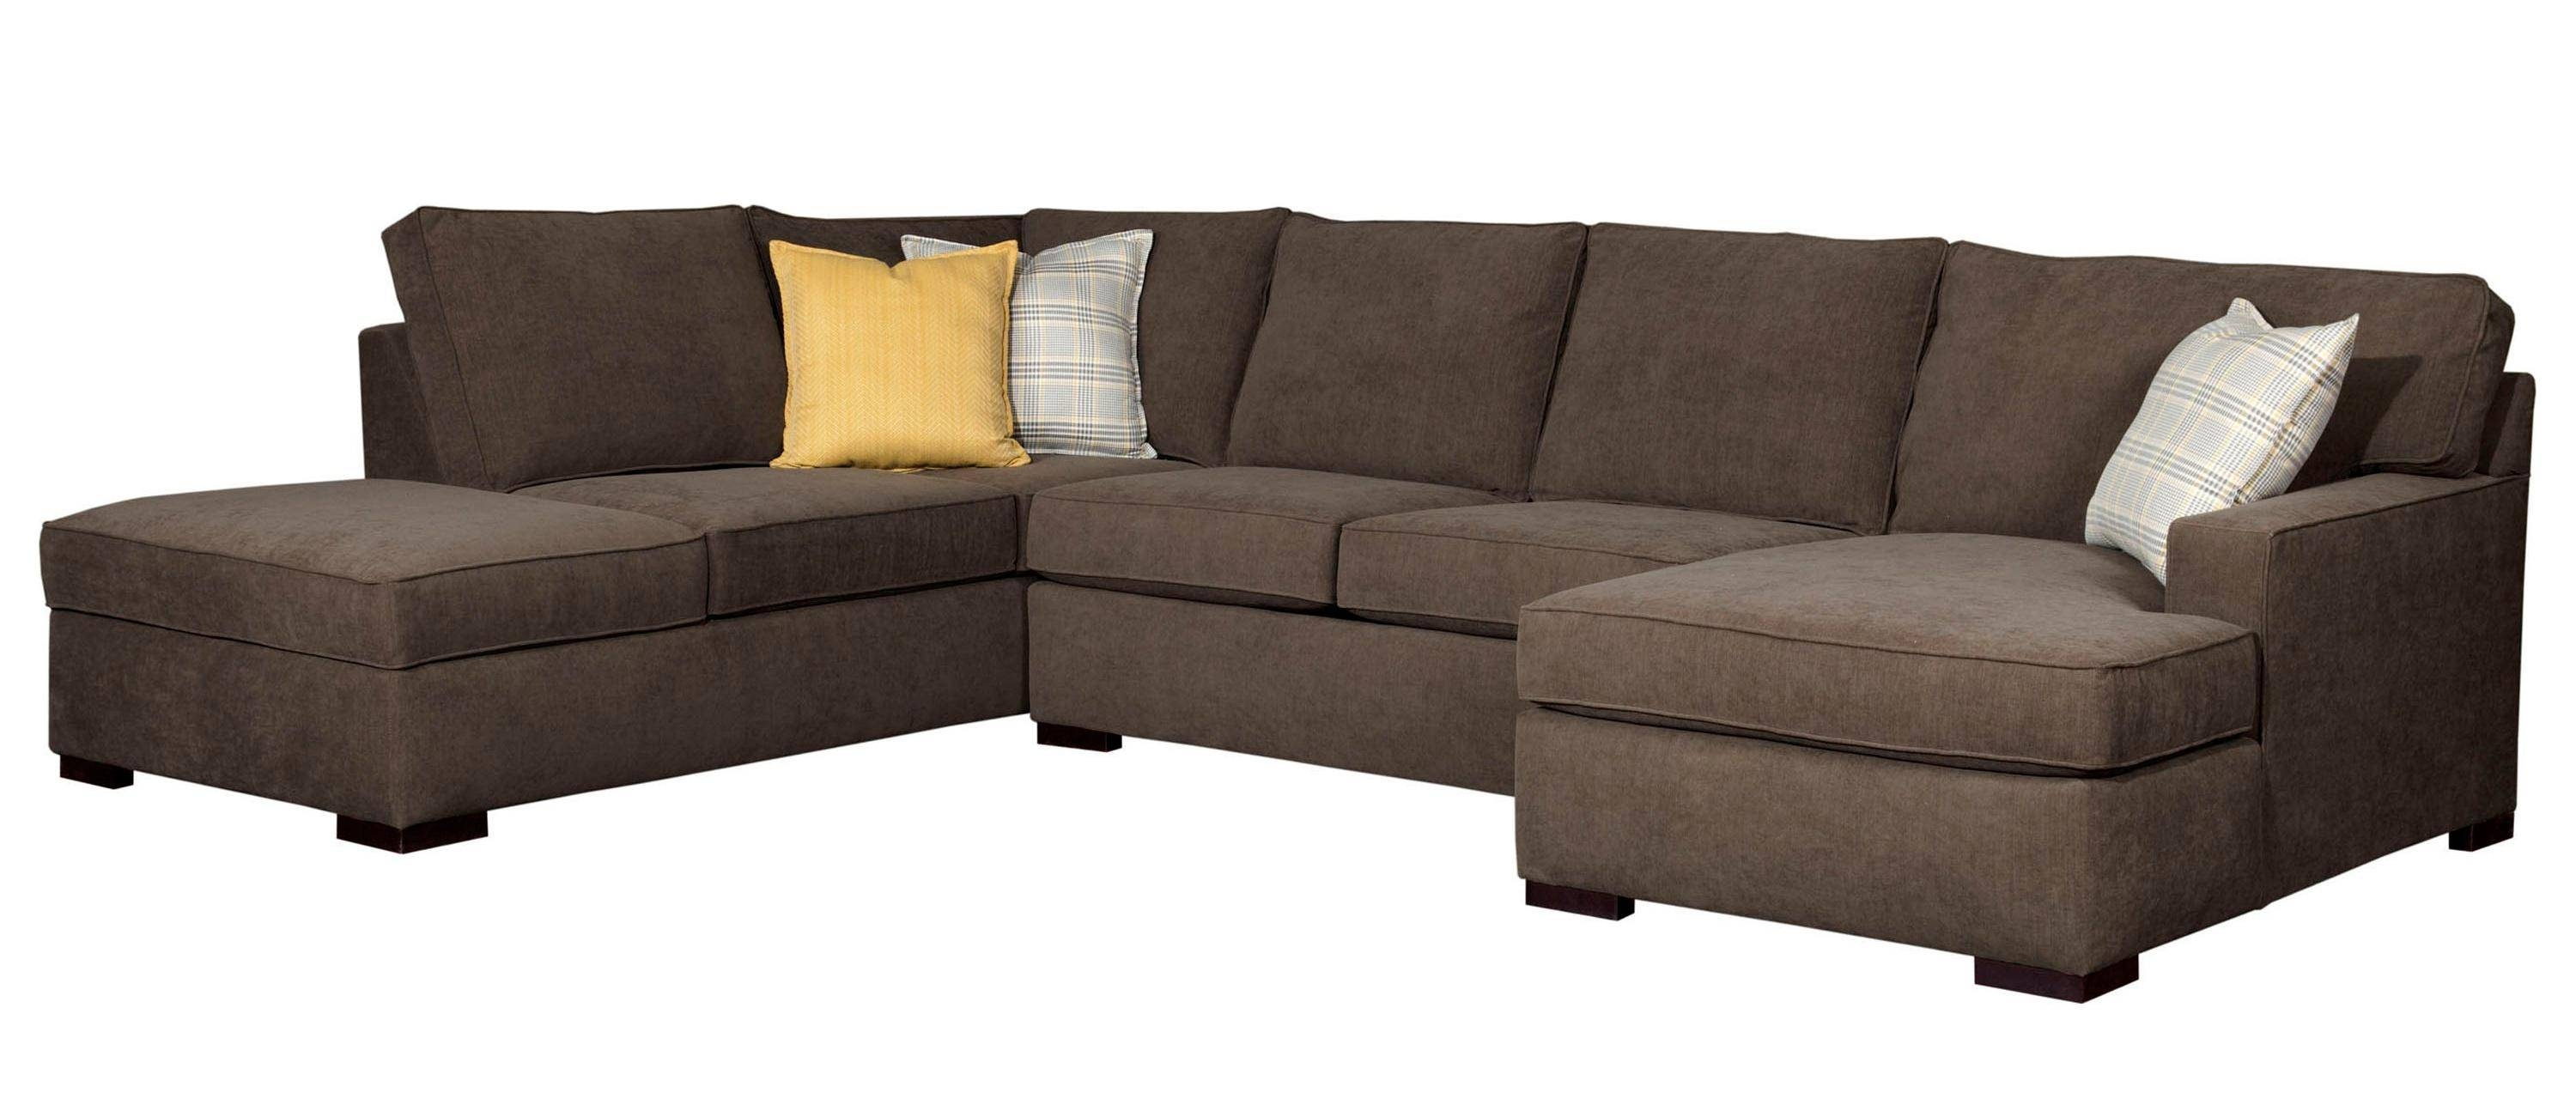 Broyhill Furniture Raphael Contemporary Sectional Sofa With Raf intended for Broyhill Sectional Sleeper Sofas (Image 7 of 15)